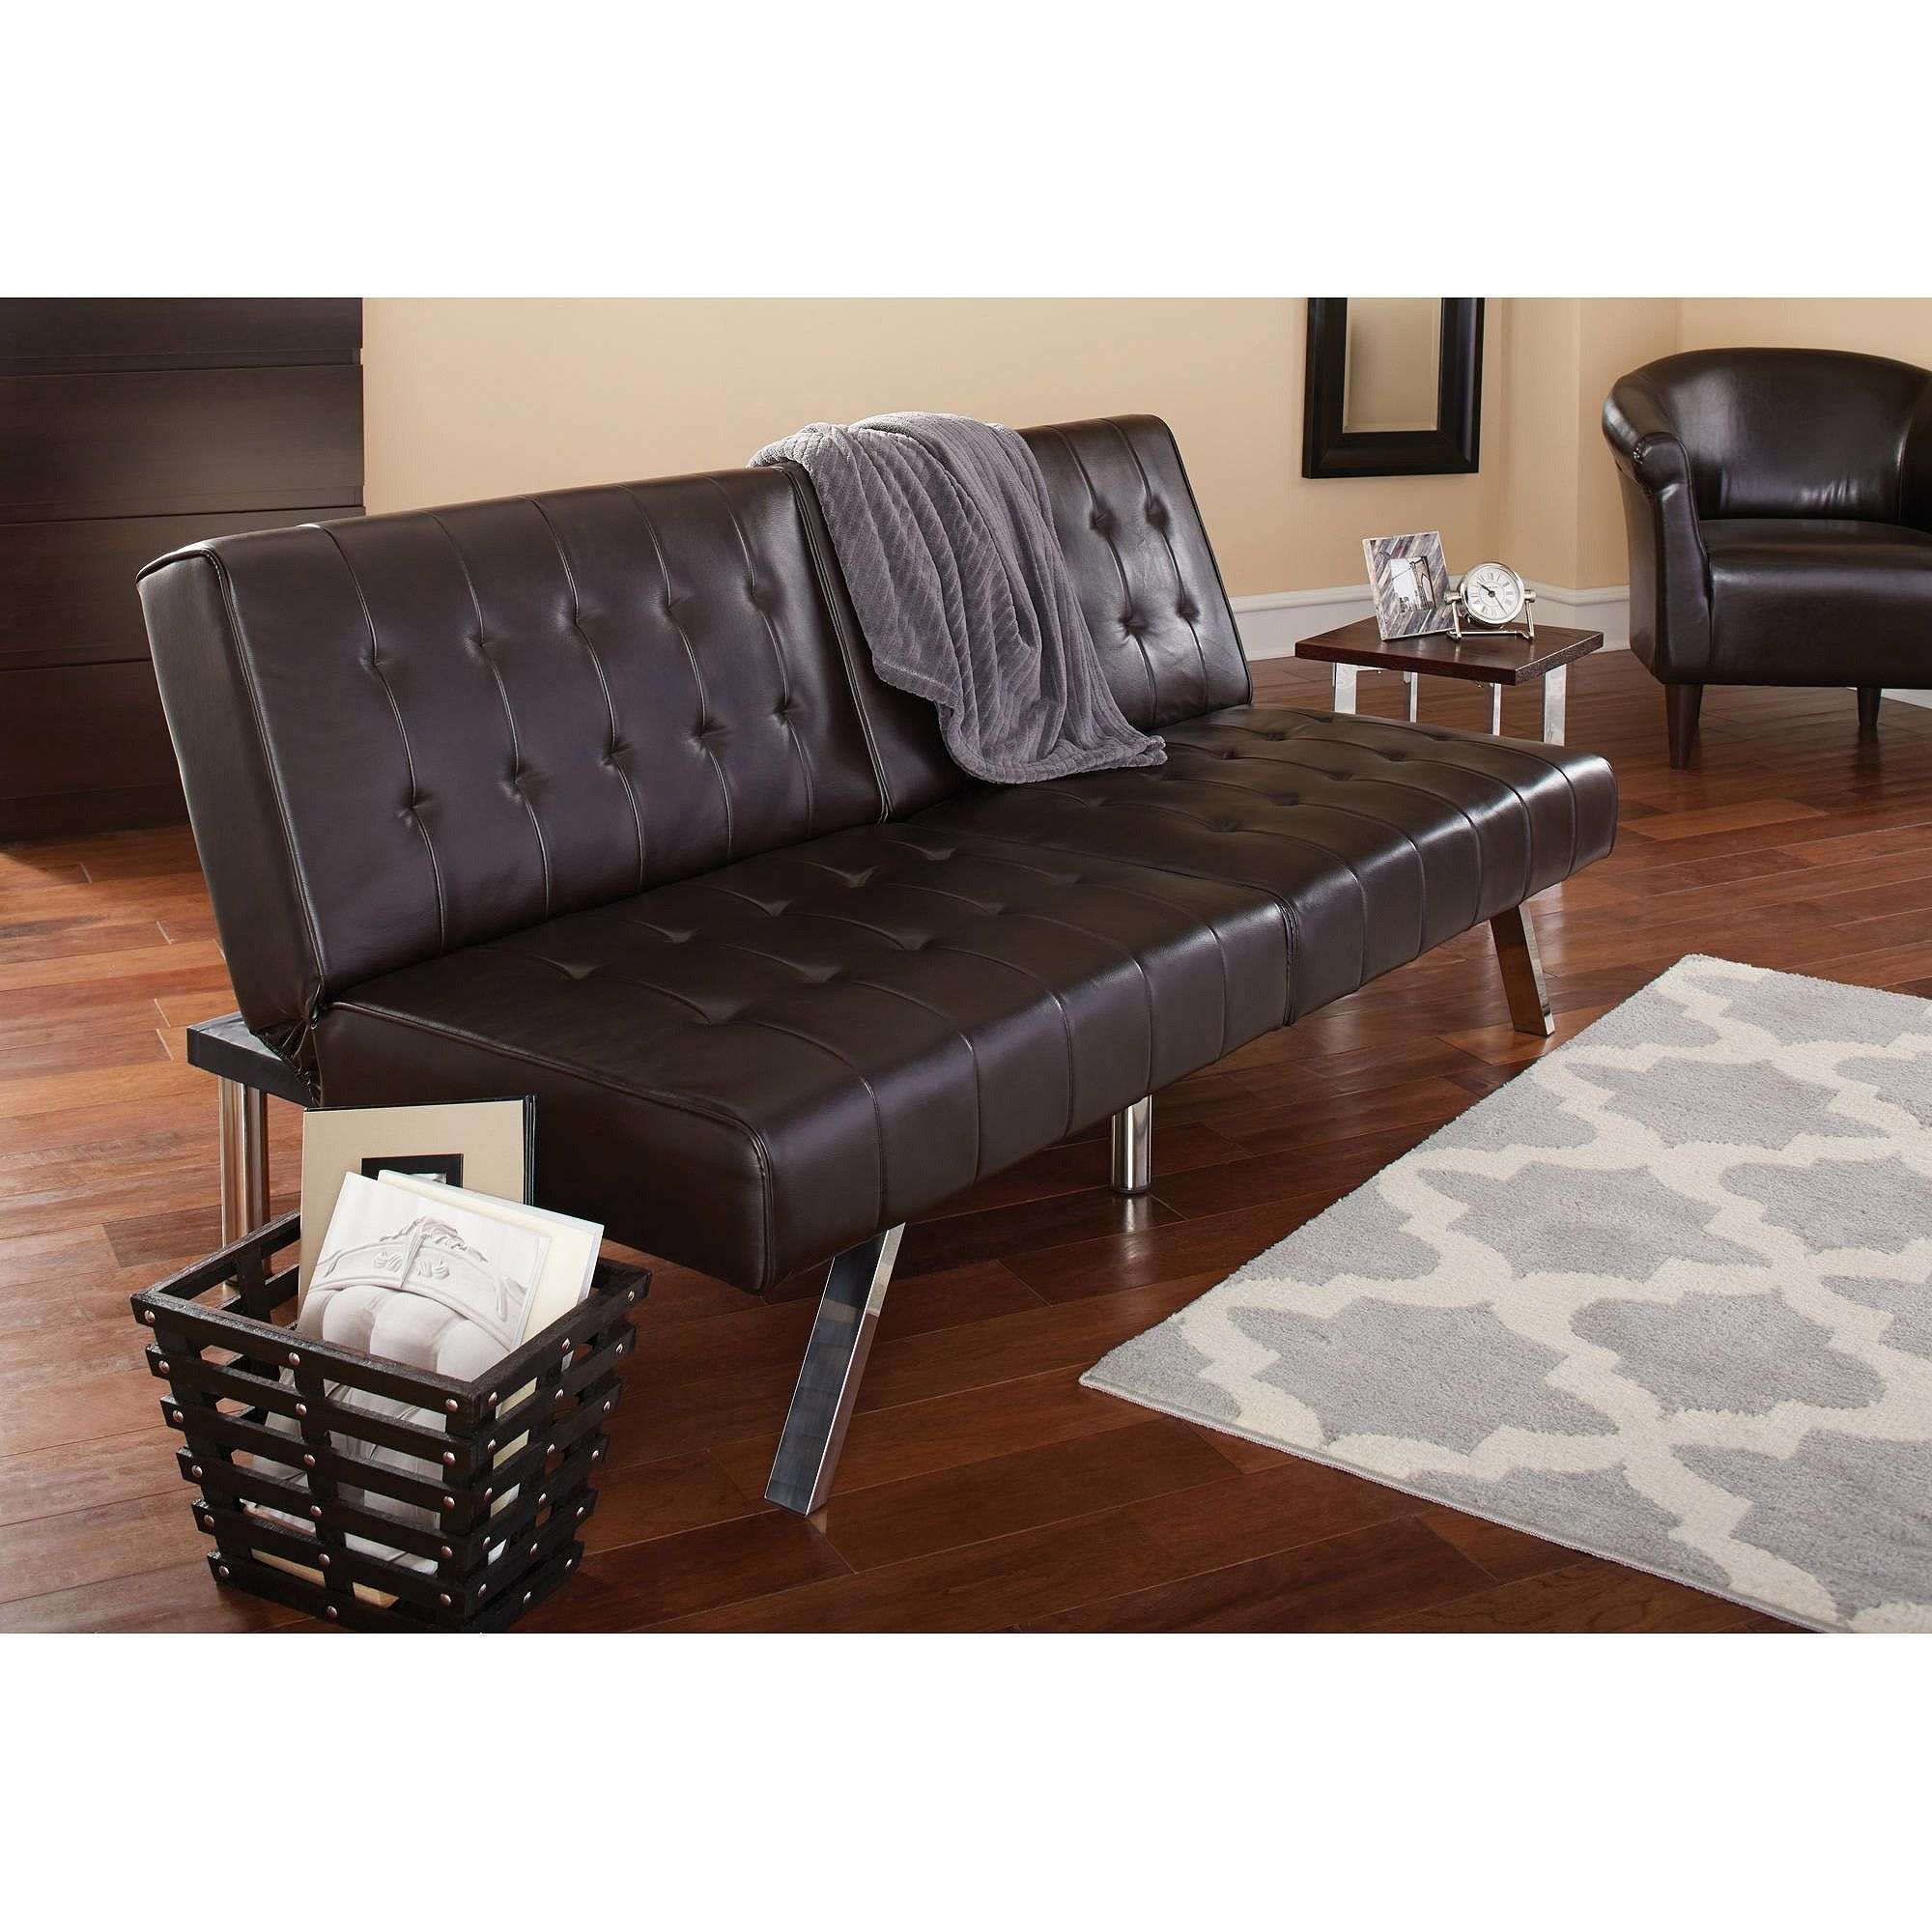 Leather Futon Living Room Sets | http://intrinsiclifedesign.com ...